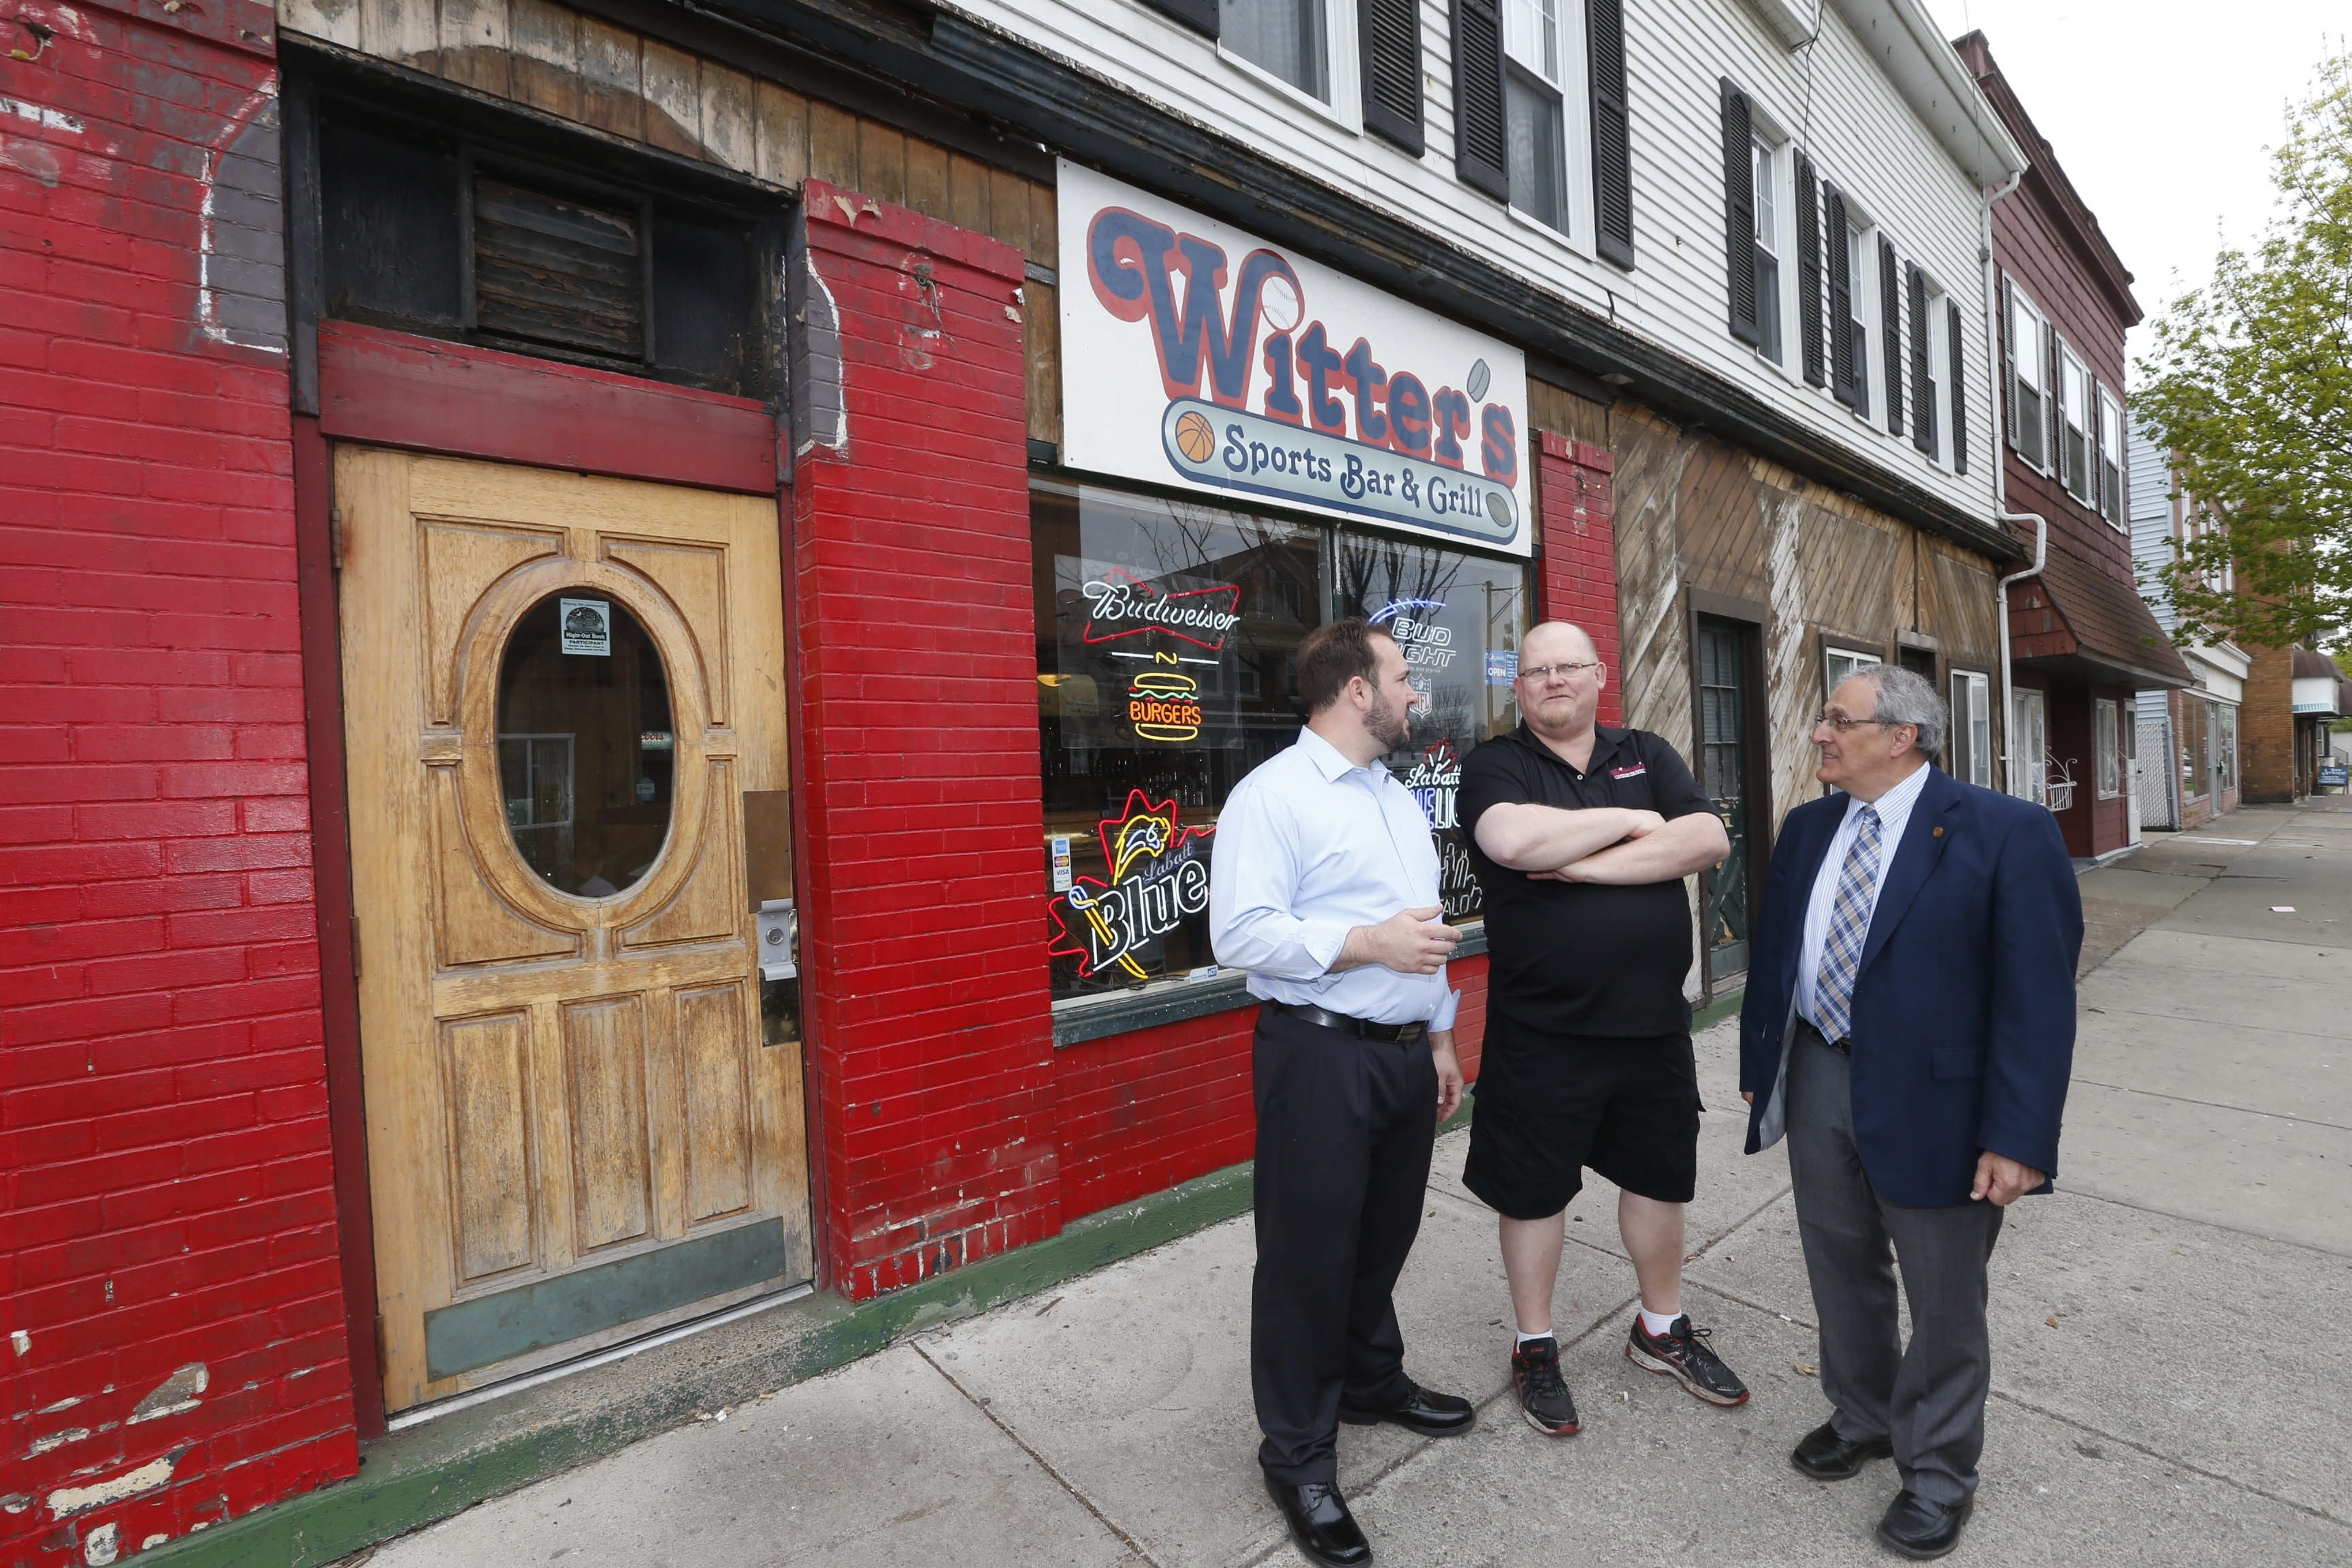 Discussing an Oliver Street comeback are, from left, Niagara County Legislator Richard Andres, Witter's Sports Bar & Grill owner Peter Witt and Mayor Arthur Pappas. State grant money is helping Witt and his wife, Shelley, upgrade their business.